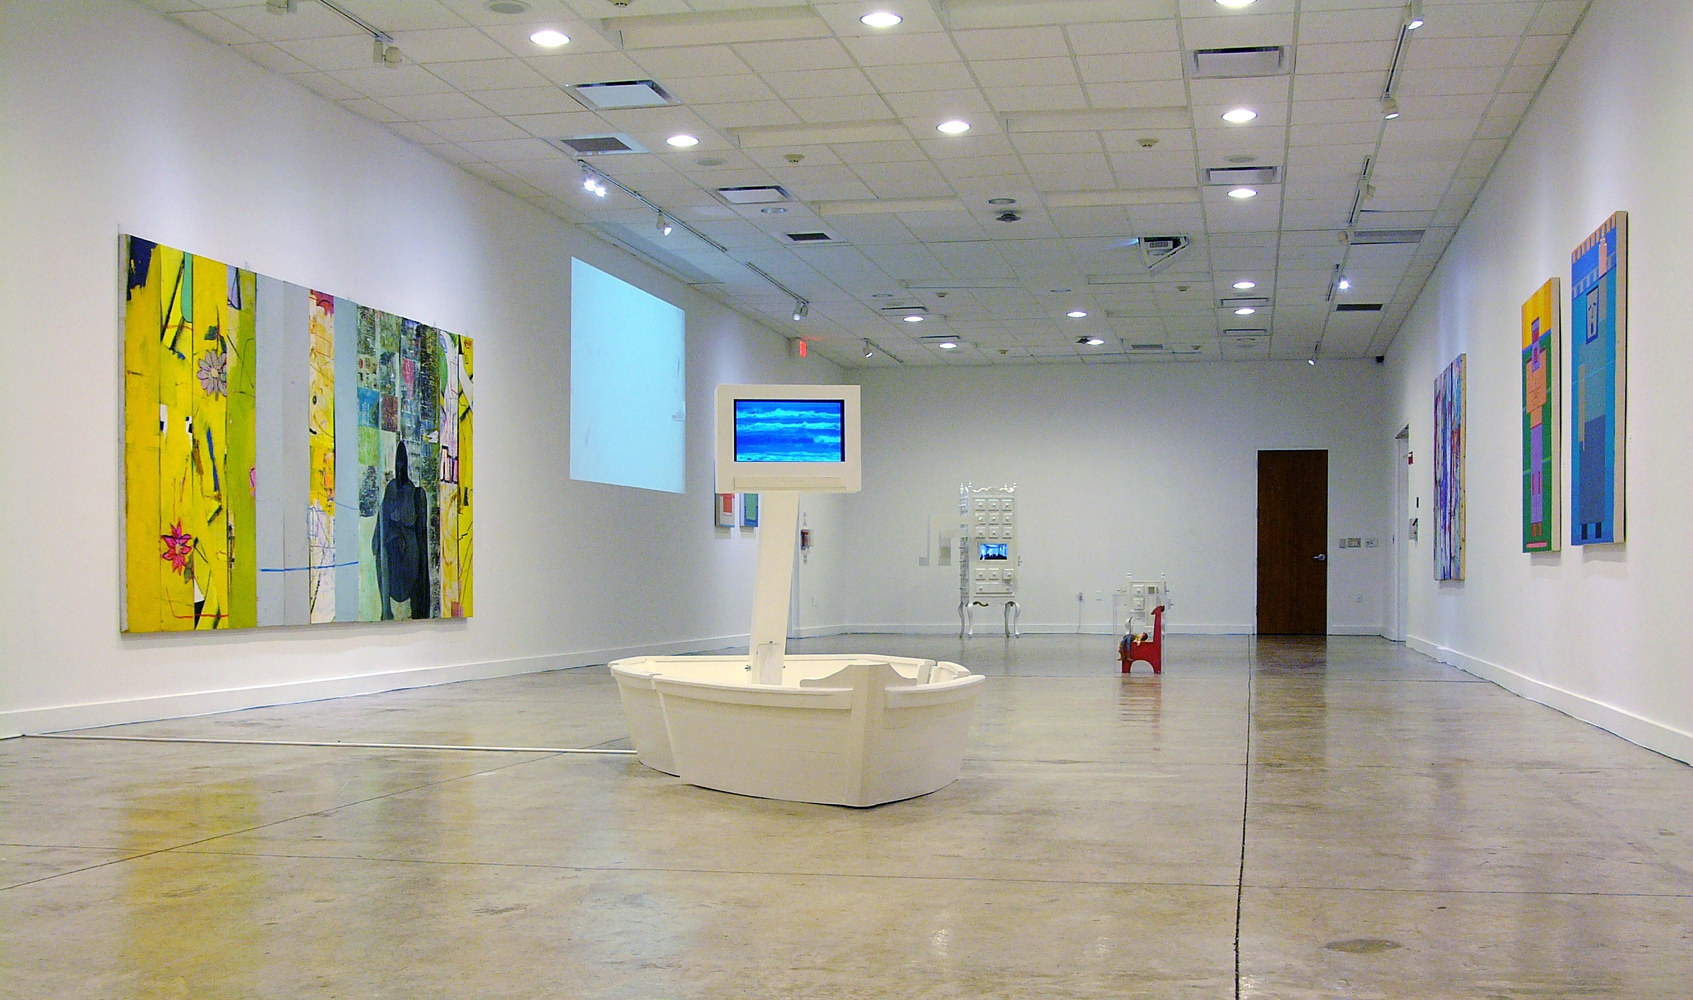 UN/Provincial: Art of South Texas, Brownsville Museum of Art, 2016 by Jorge Puron